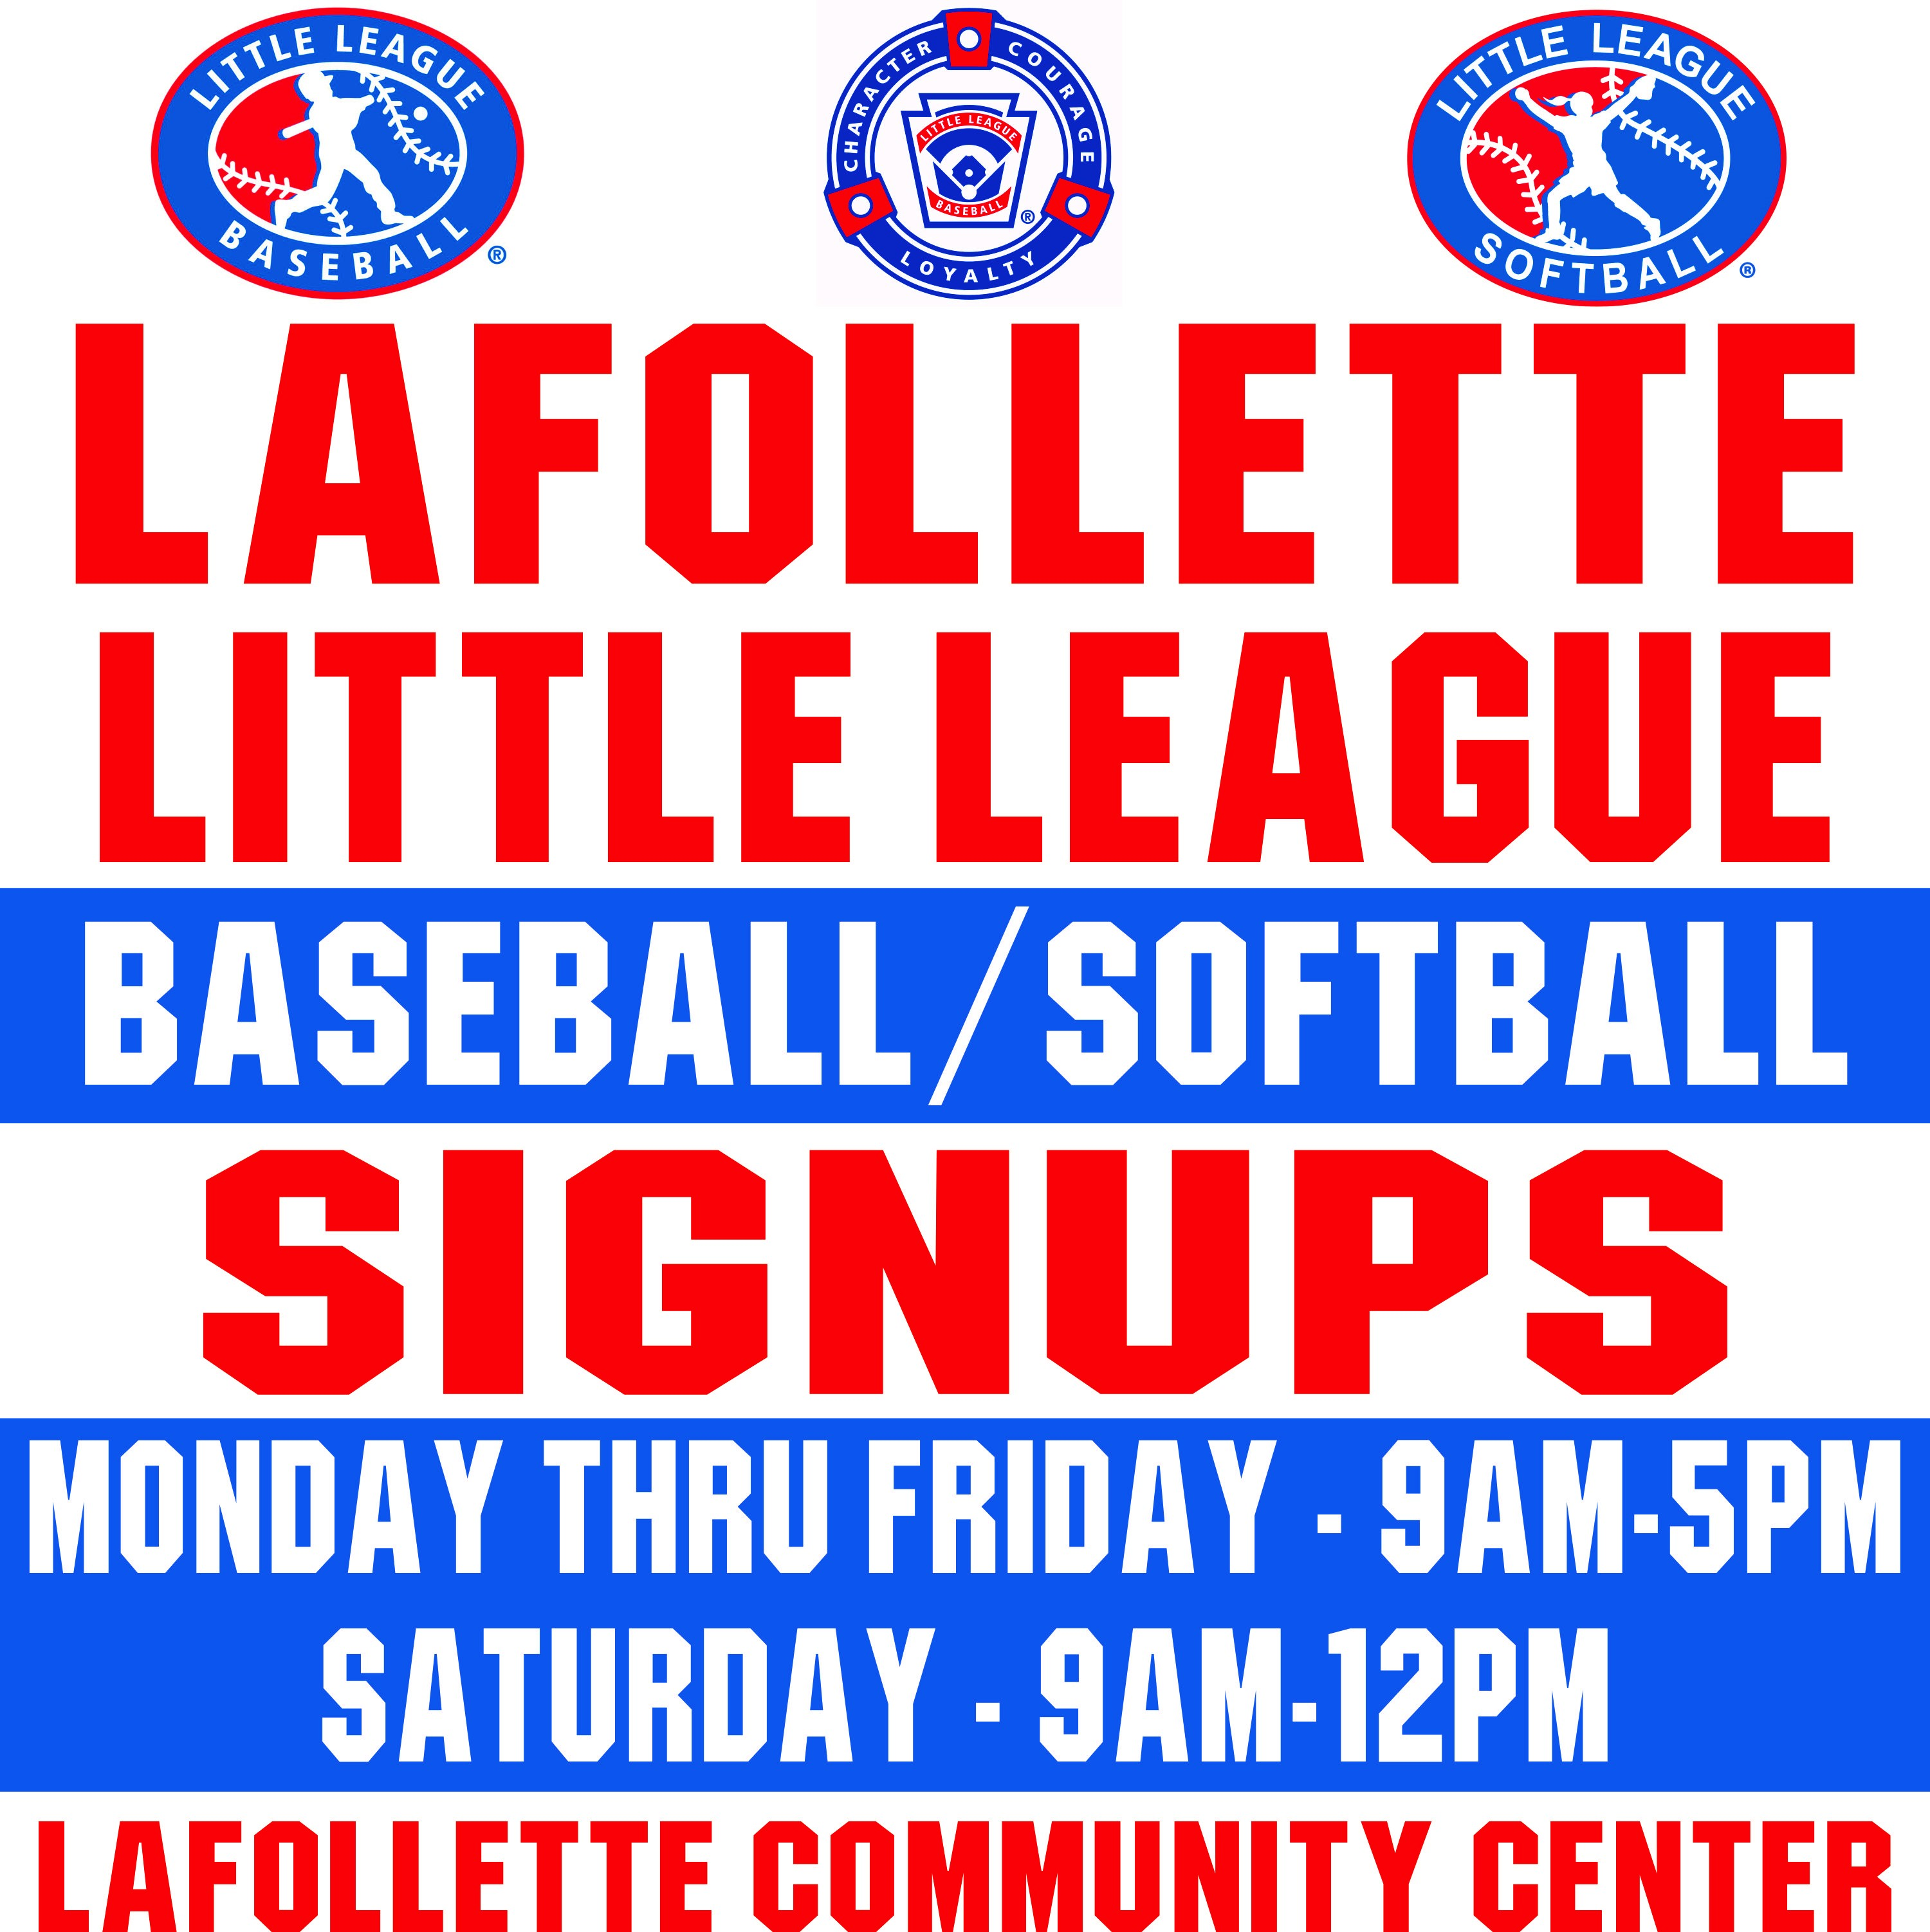 LaFollette Little League Baseball and softball signups Monday thru Friday 9am to 5pm and Saturday 9am-12pm